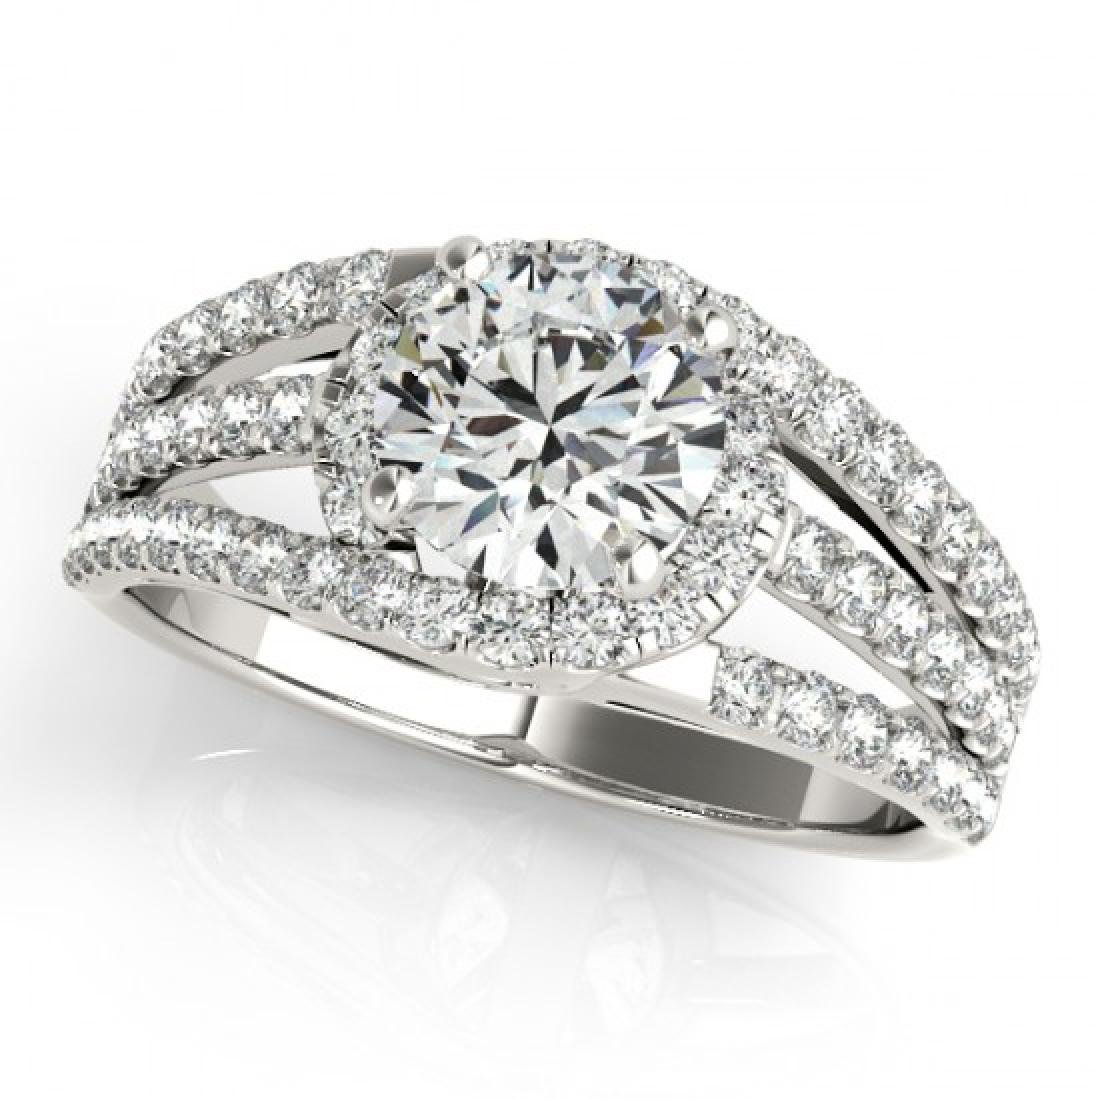 1.25 CTW Certified VS/SI Diamond Solitaire Ring 14K